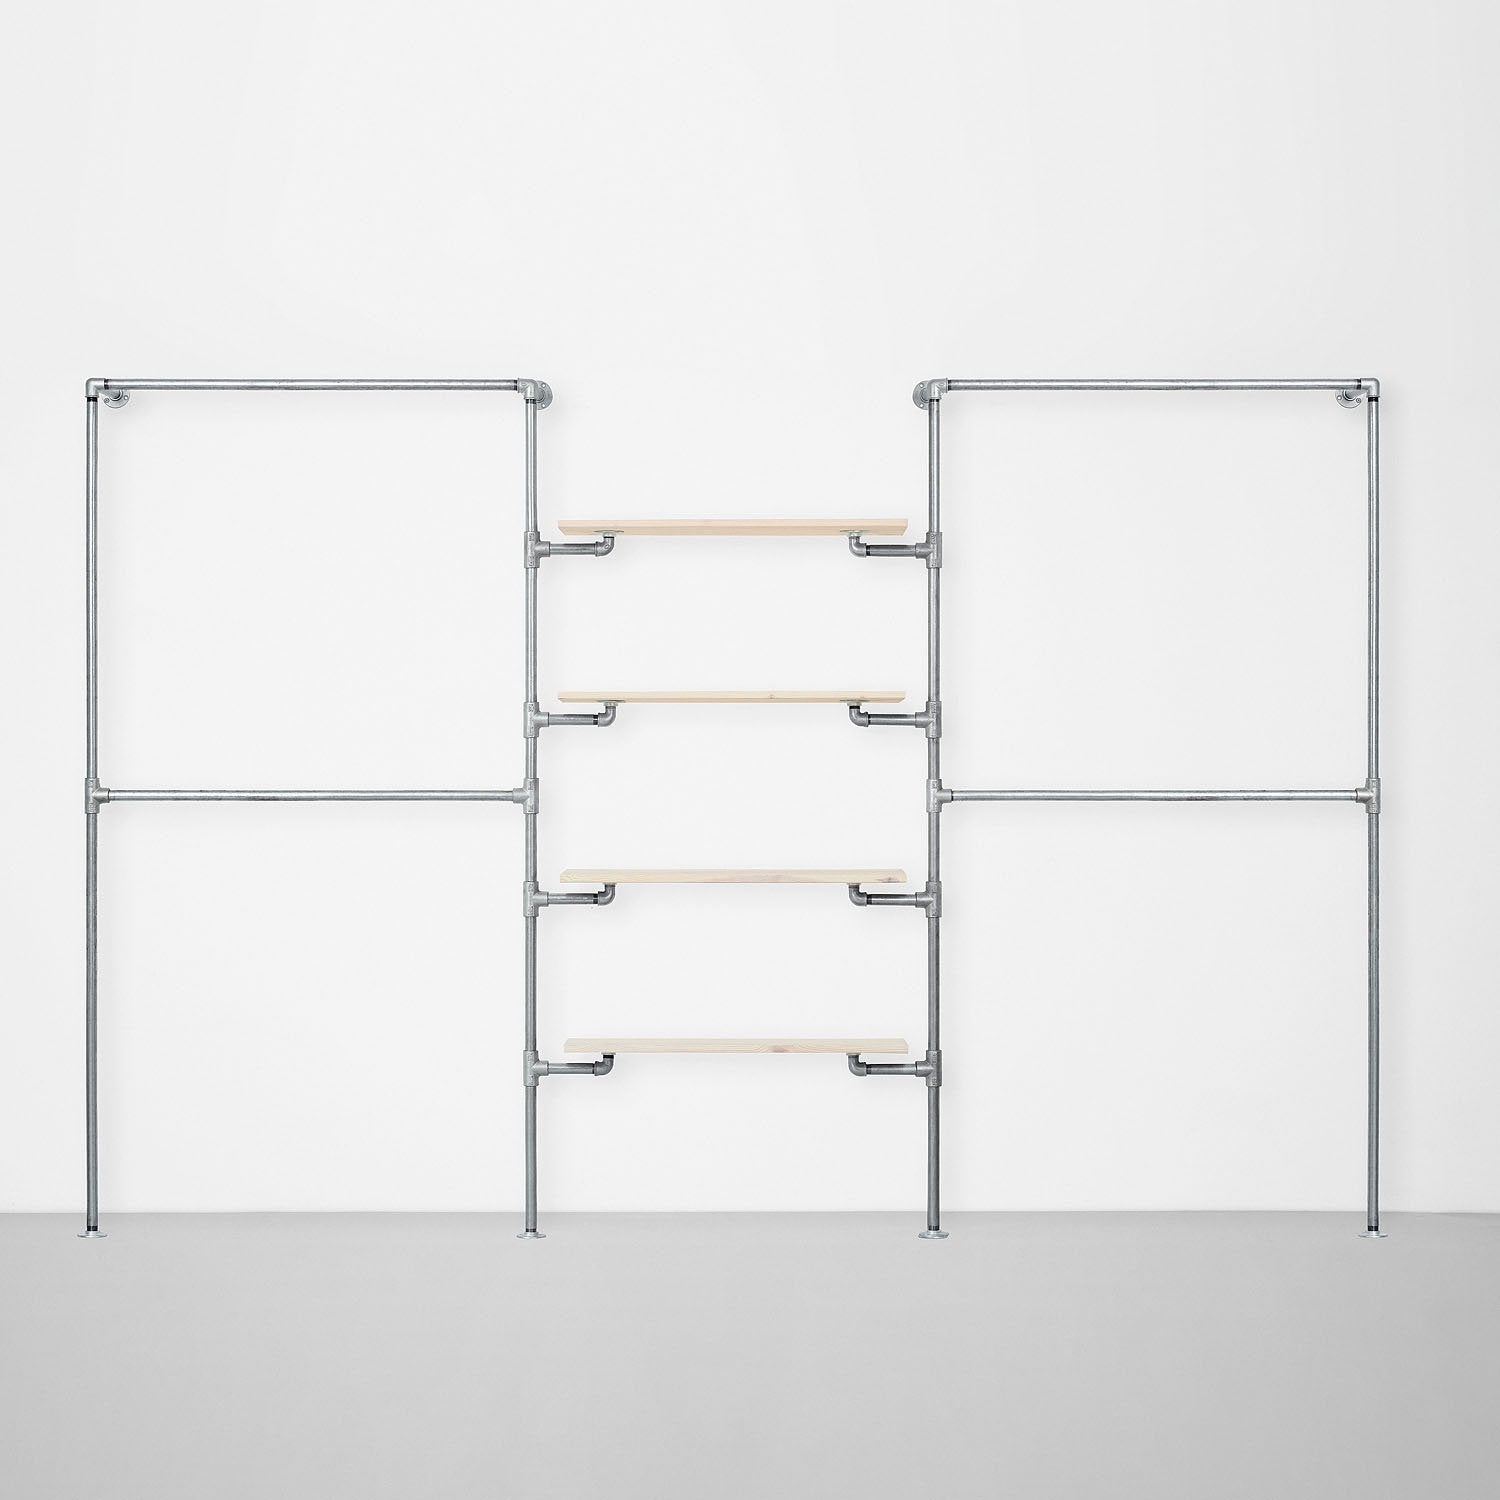 The Walk-In 3 row wardrobe system - (2 rails / 4 shelves/ 2 rails)